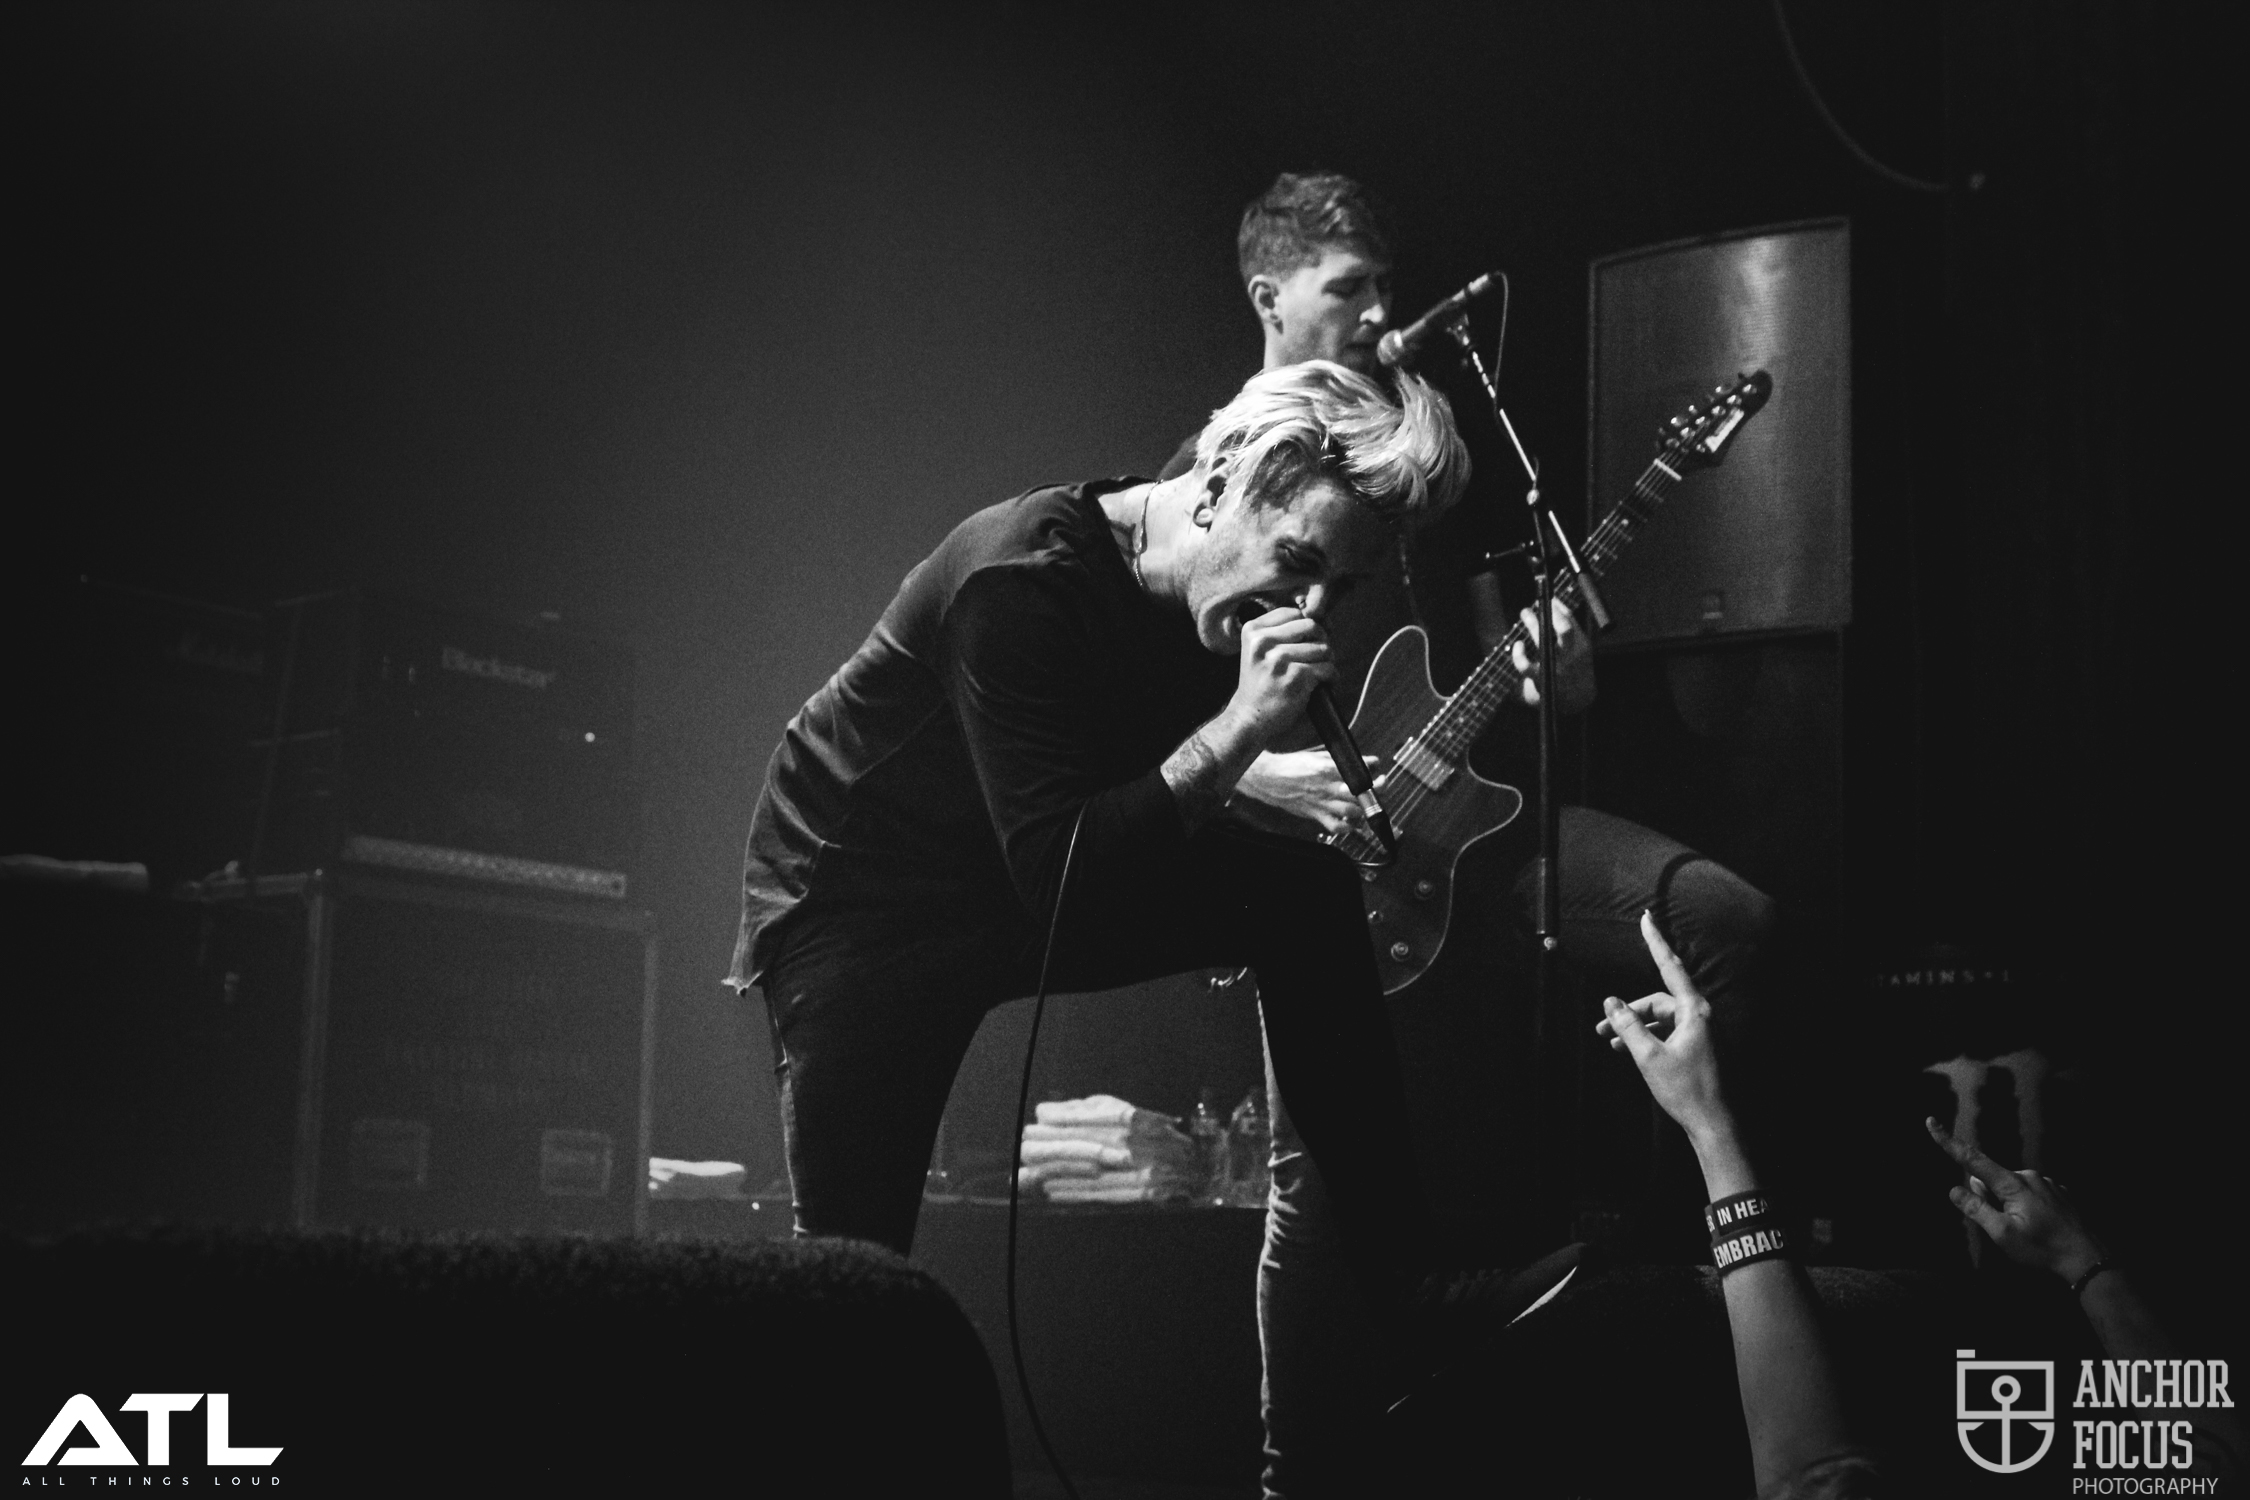 Bury Tomorrow (c) Natasja de Vries